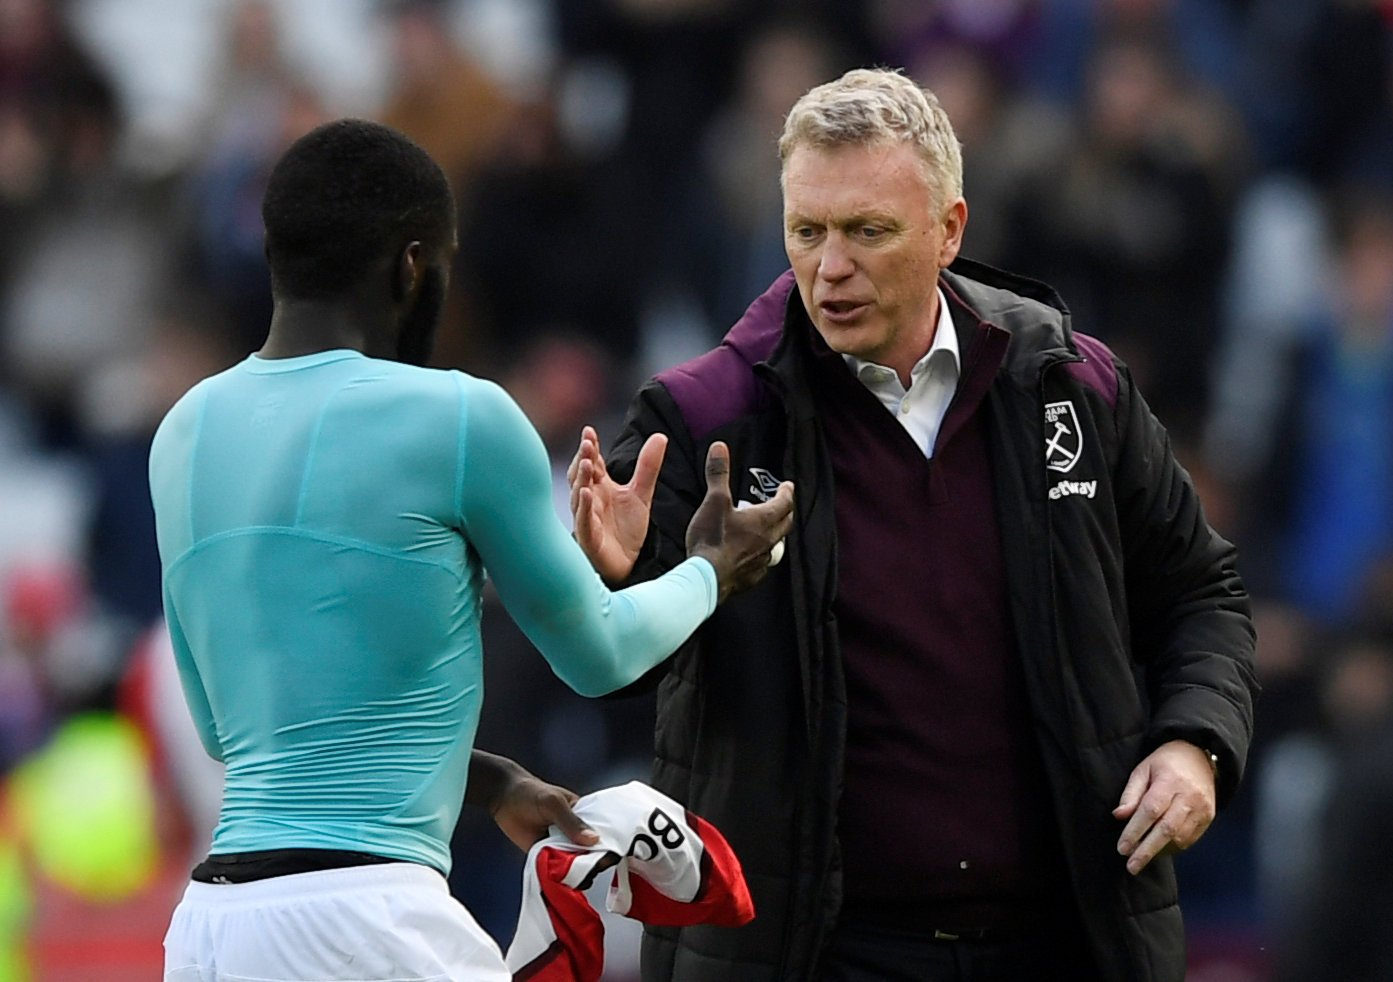 David Moyes greets his players following West Ham United's game against Chelsea